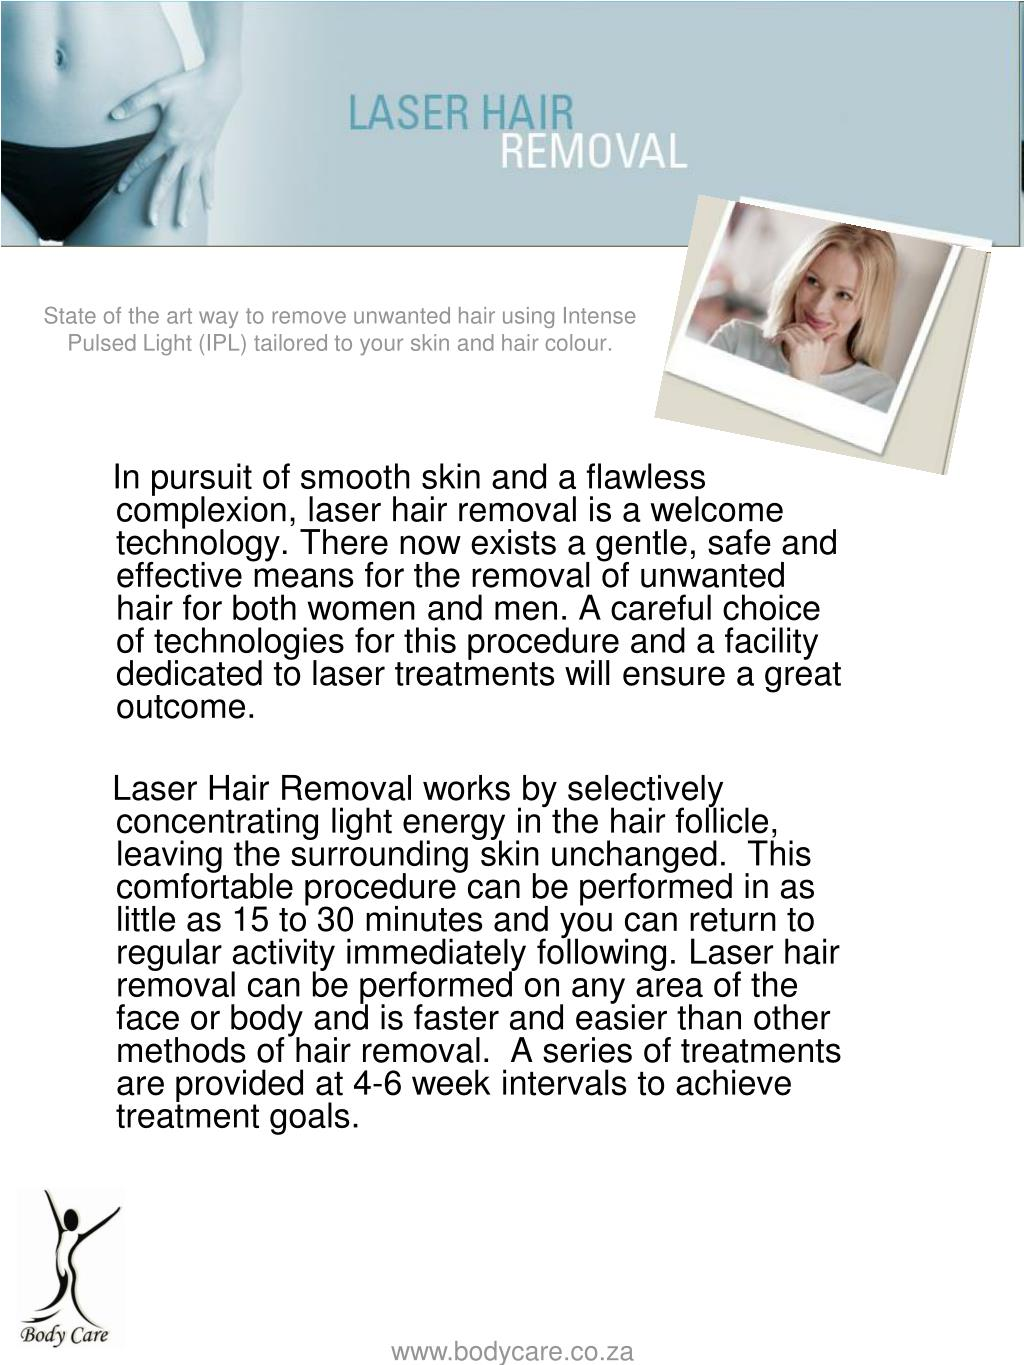 State of the art way to remove unwanted hair using Intense Pulsed Light (IPL) tailored to your skin and hair colour.